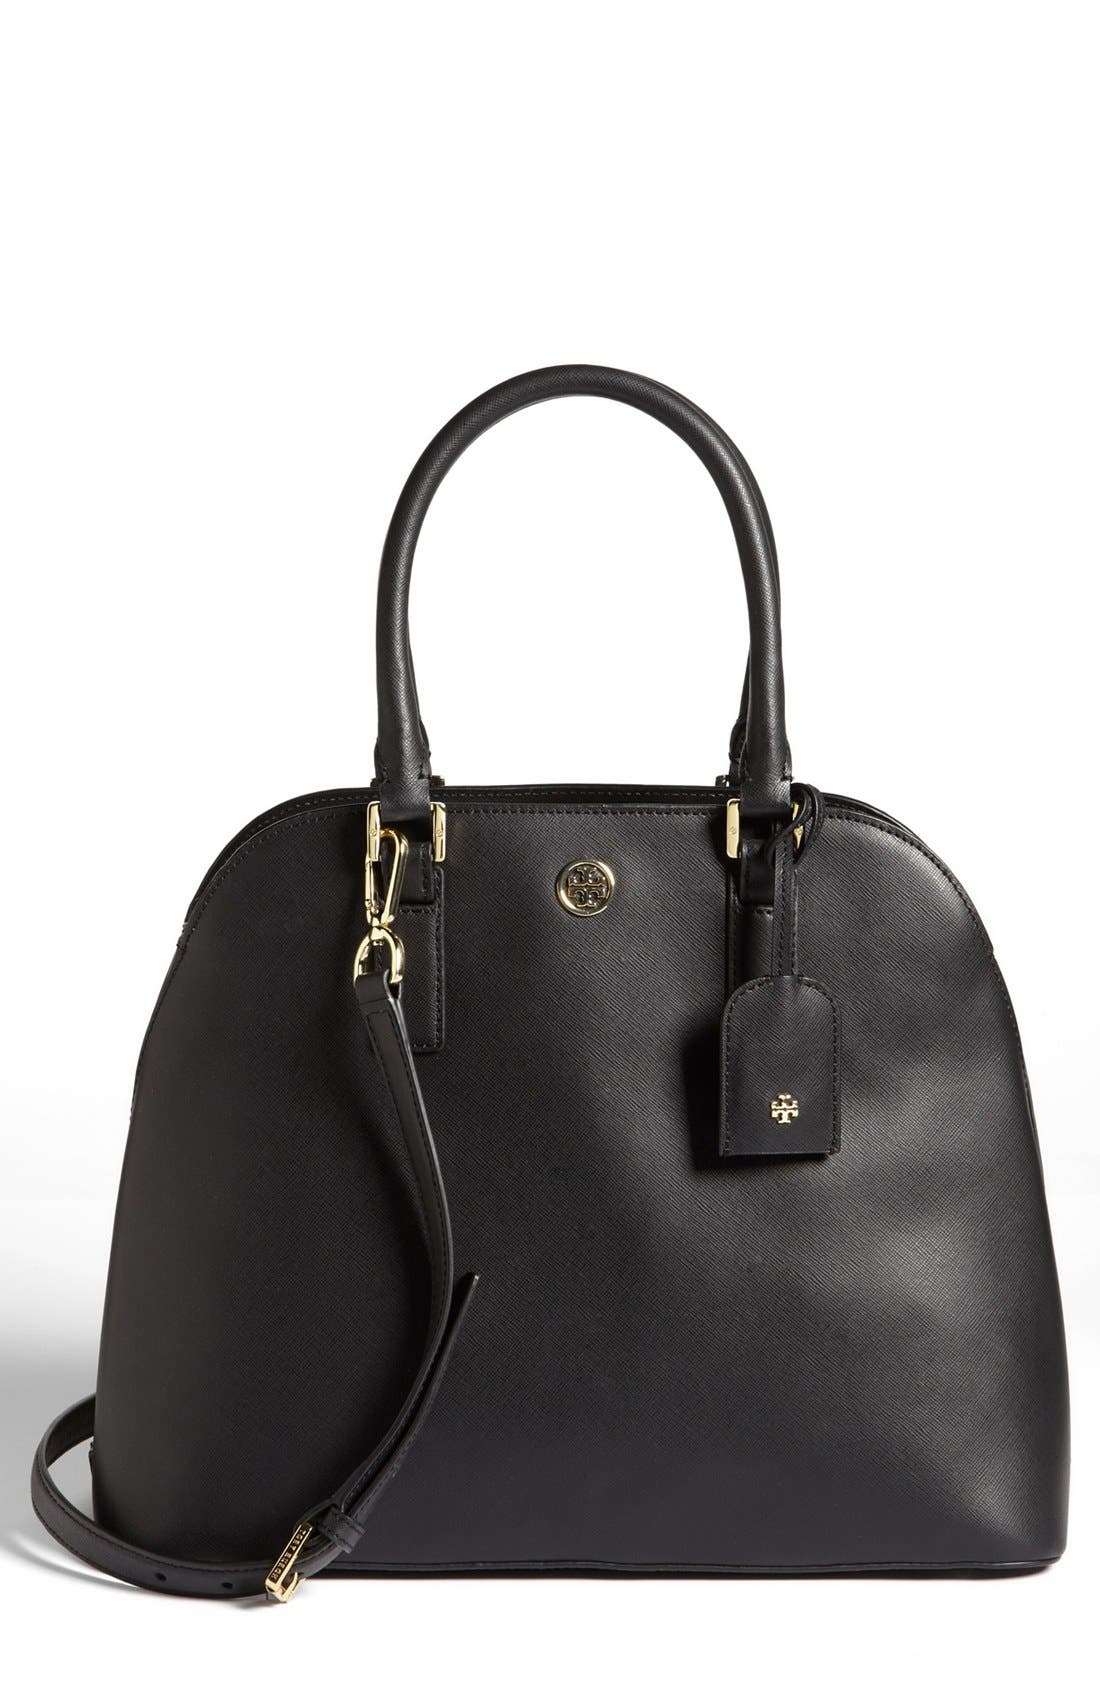 Alternate Image 1 Selected - Tory Burch 'Robinson' Open Dome Satchel